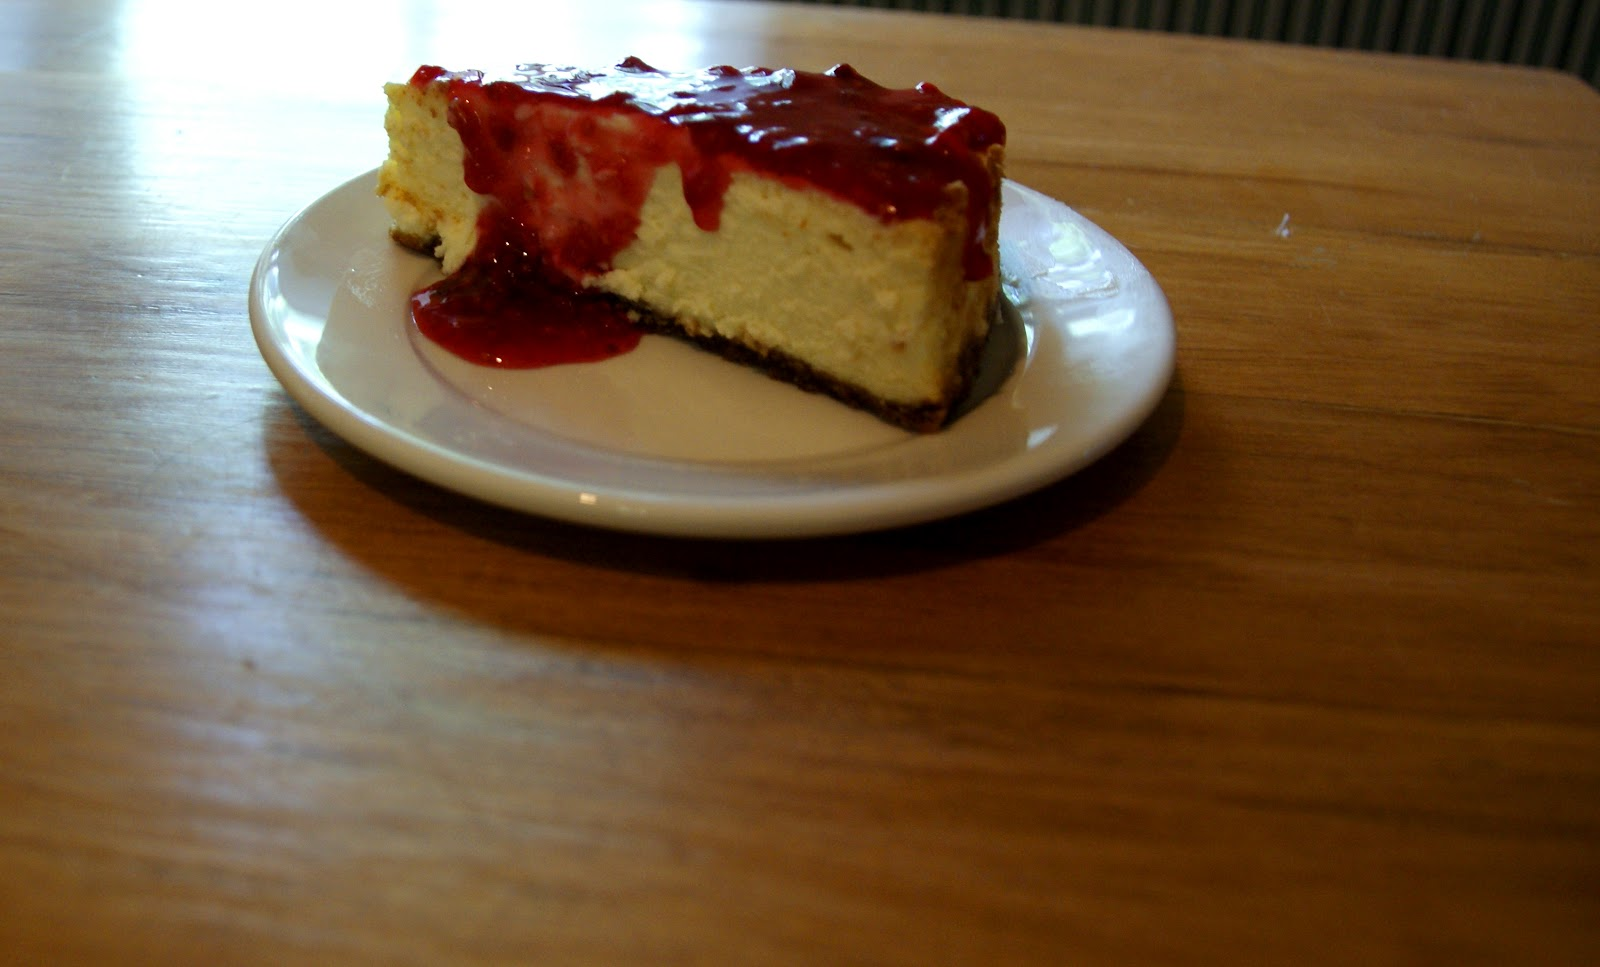 Stonehill Studio: TGIDN: Cheesecake Supreme with Raspberry Topping